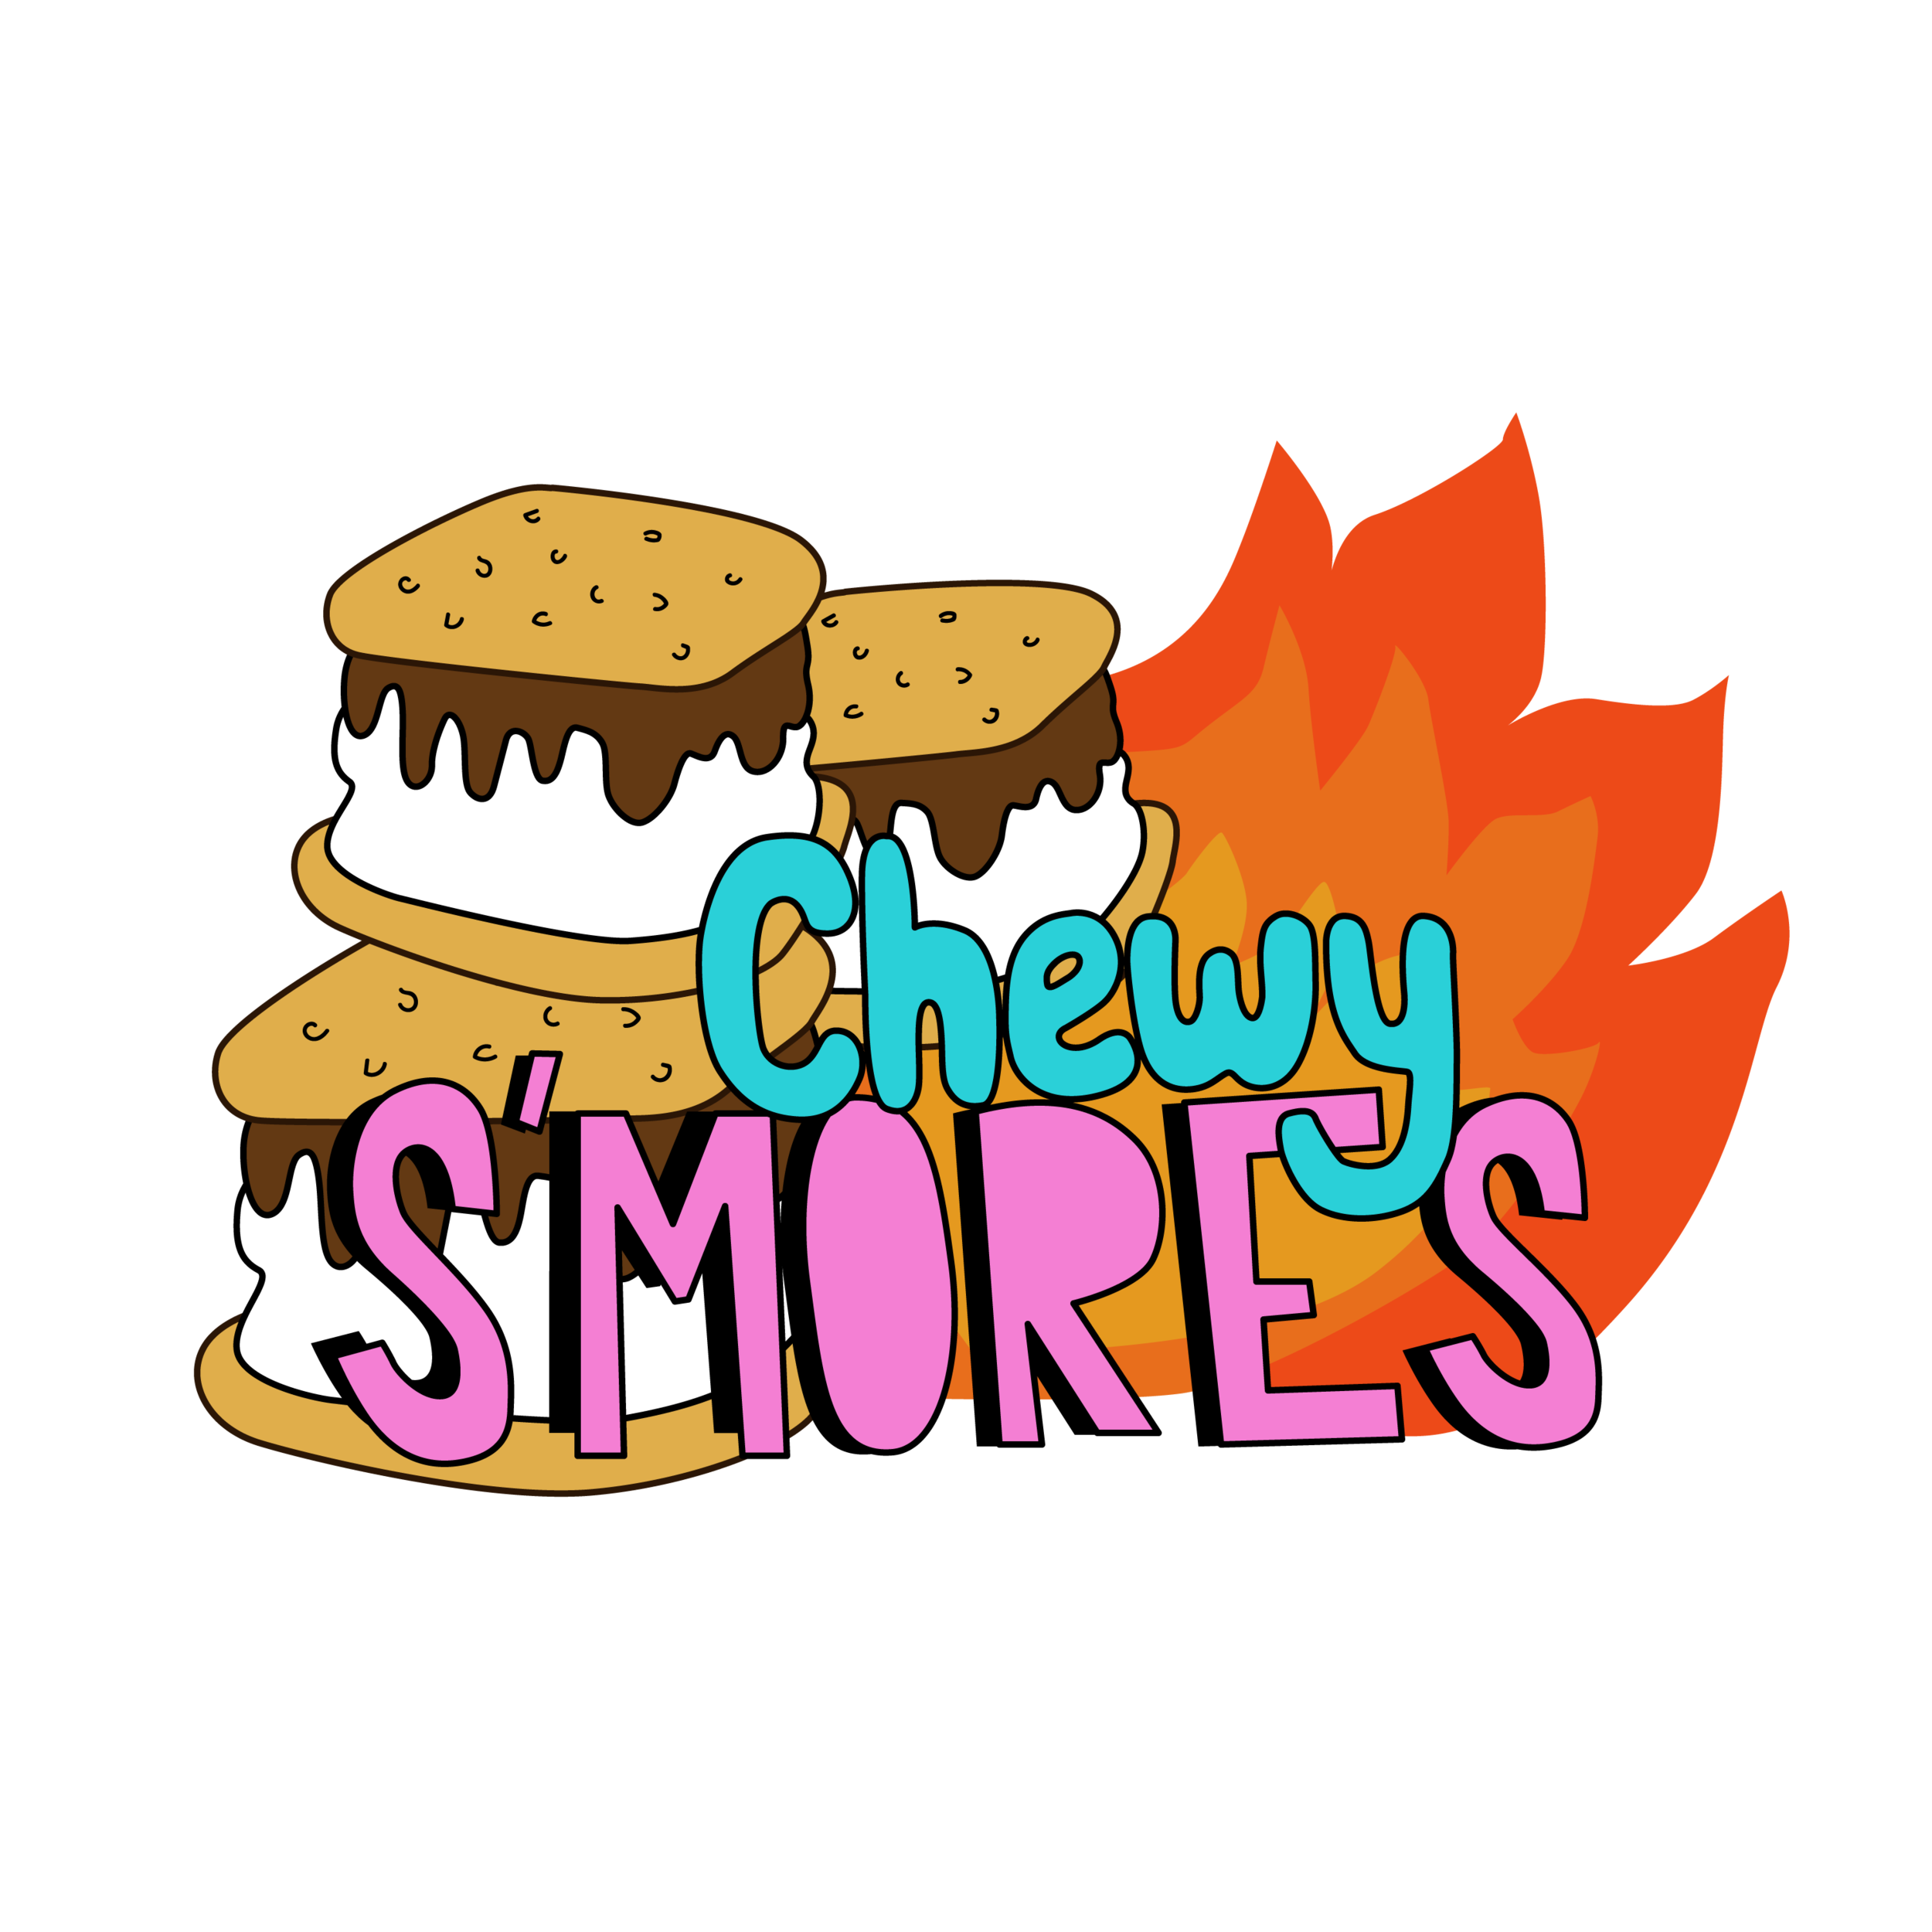 Chewy S'mores - Generally up late singing around campfires, coach has set a strict curfew in place, so don't sleep on this well-rested version.